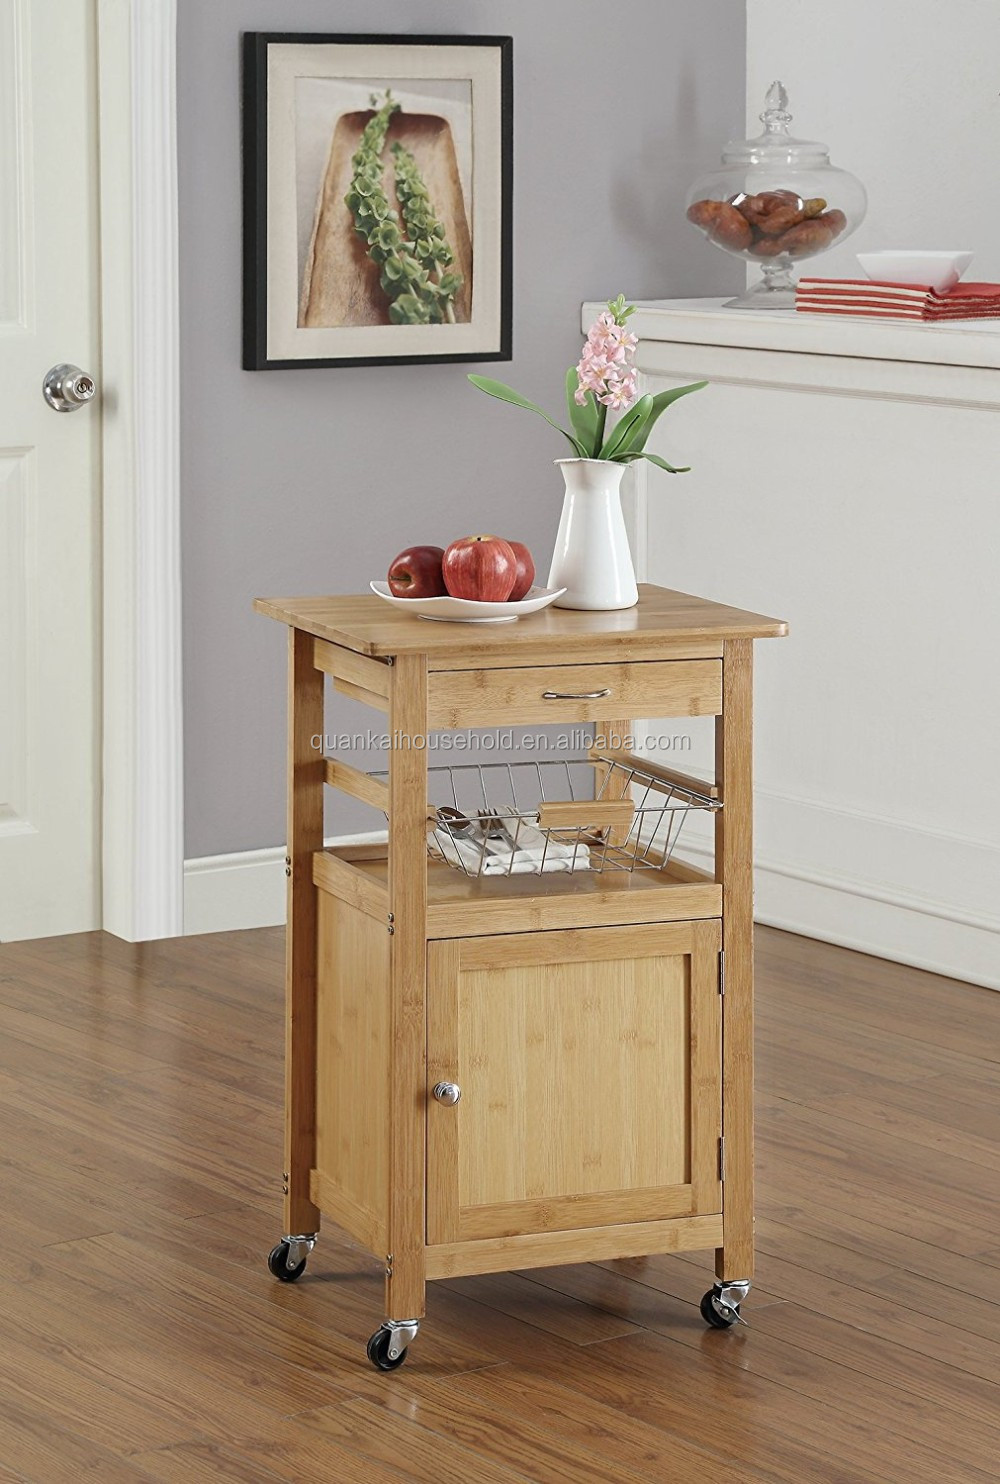 Natural Bamboo Rolling Kitchen Trolley Cart Storage Shelf Drawers Basket Dining